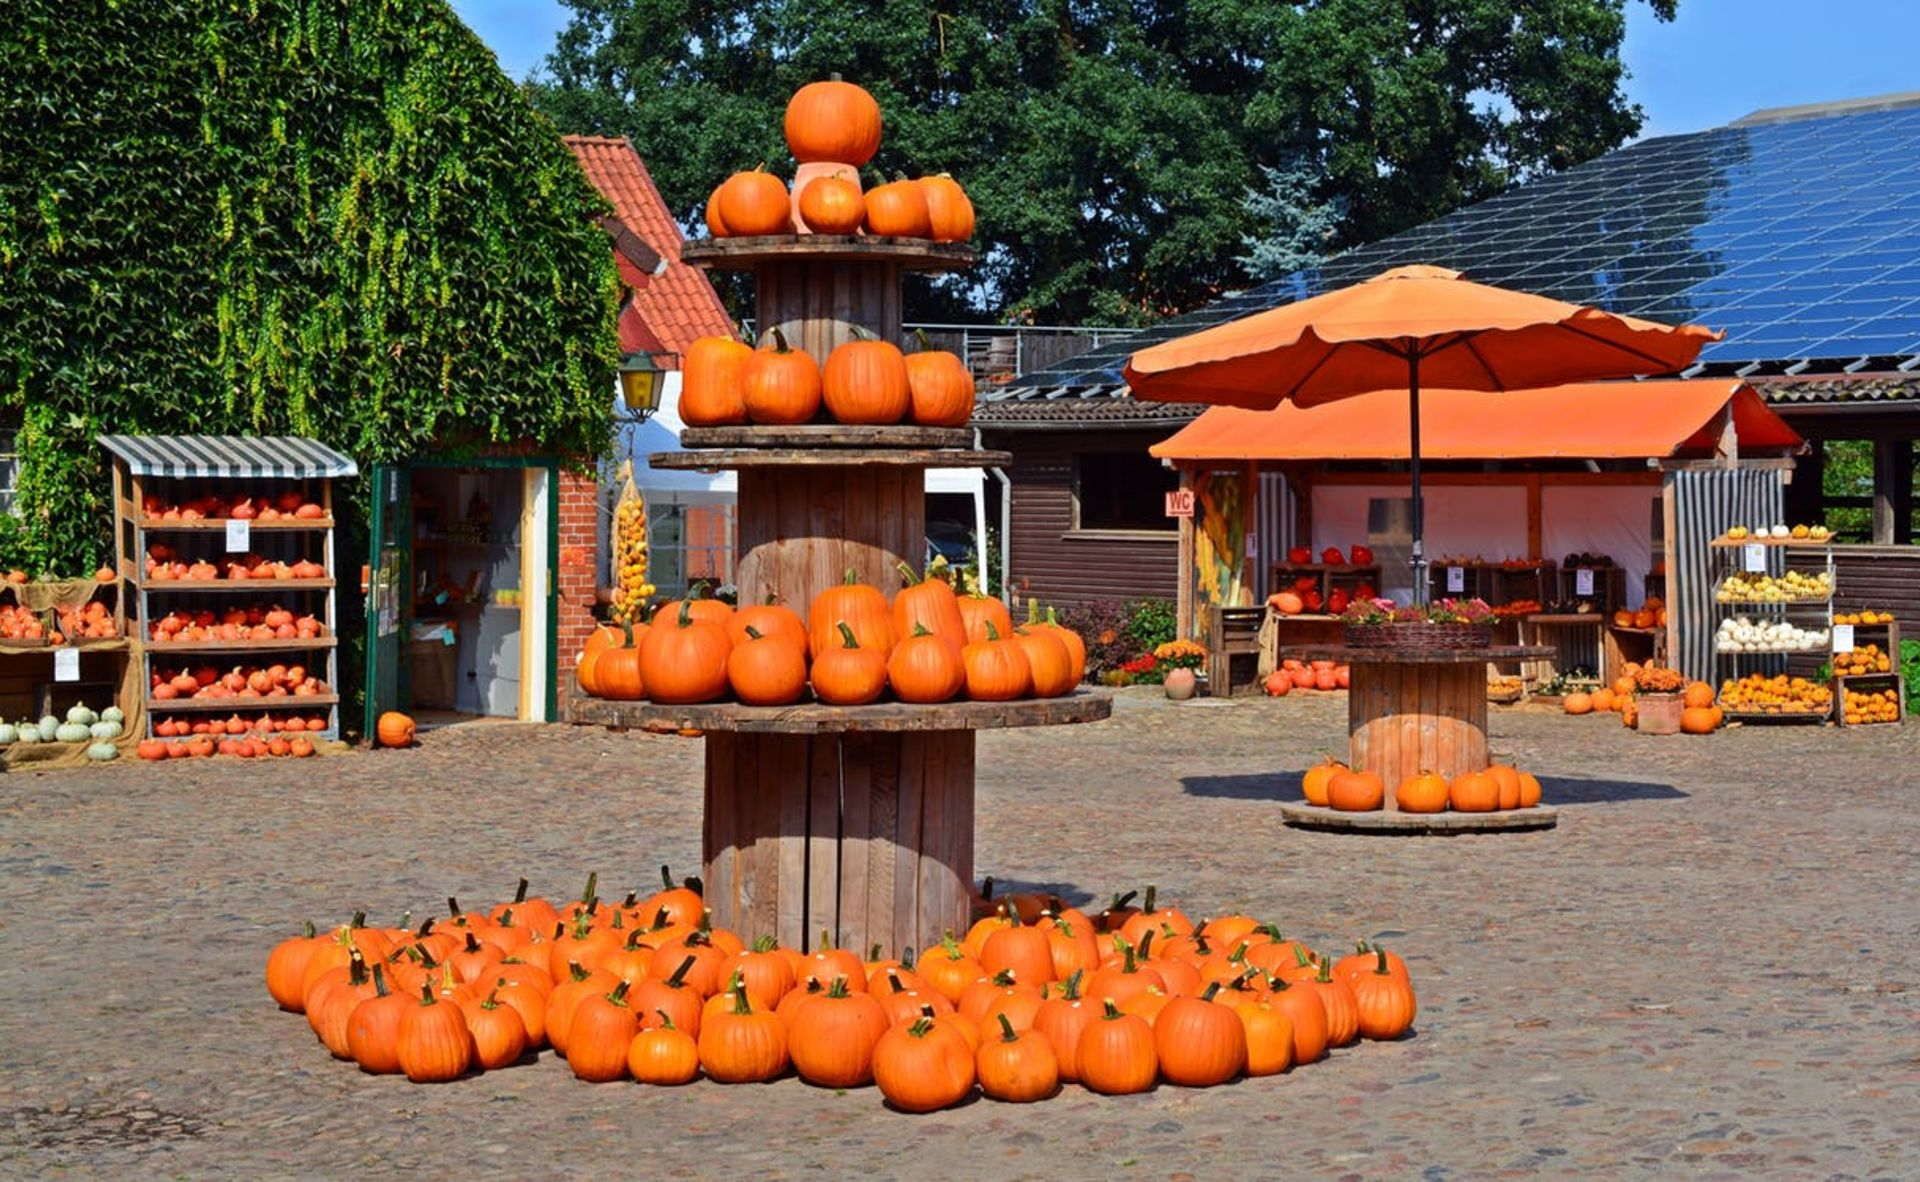 Colorado Springs Pumpkin Patches and More!